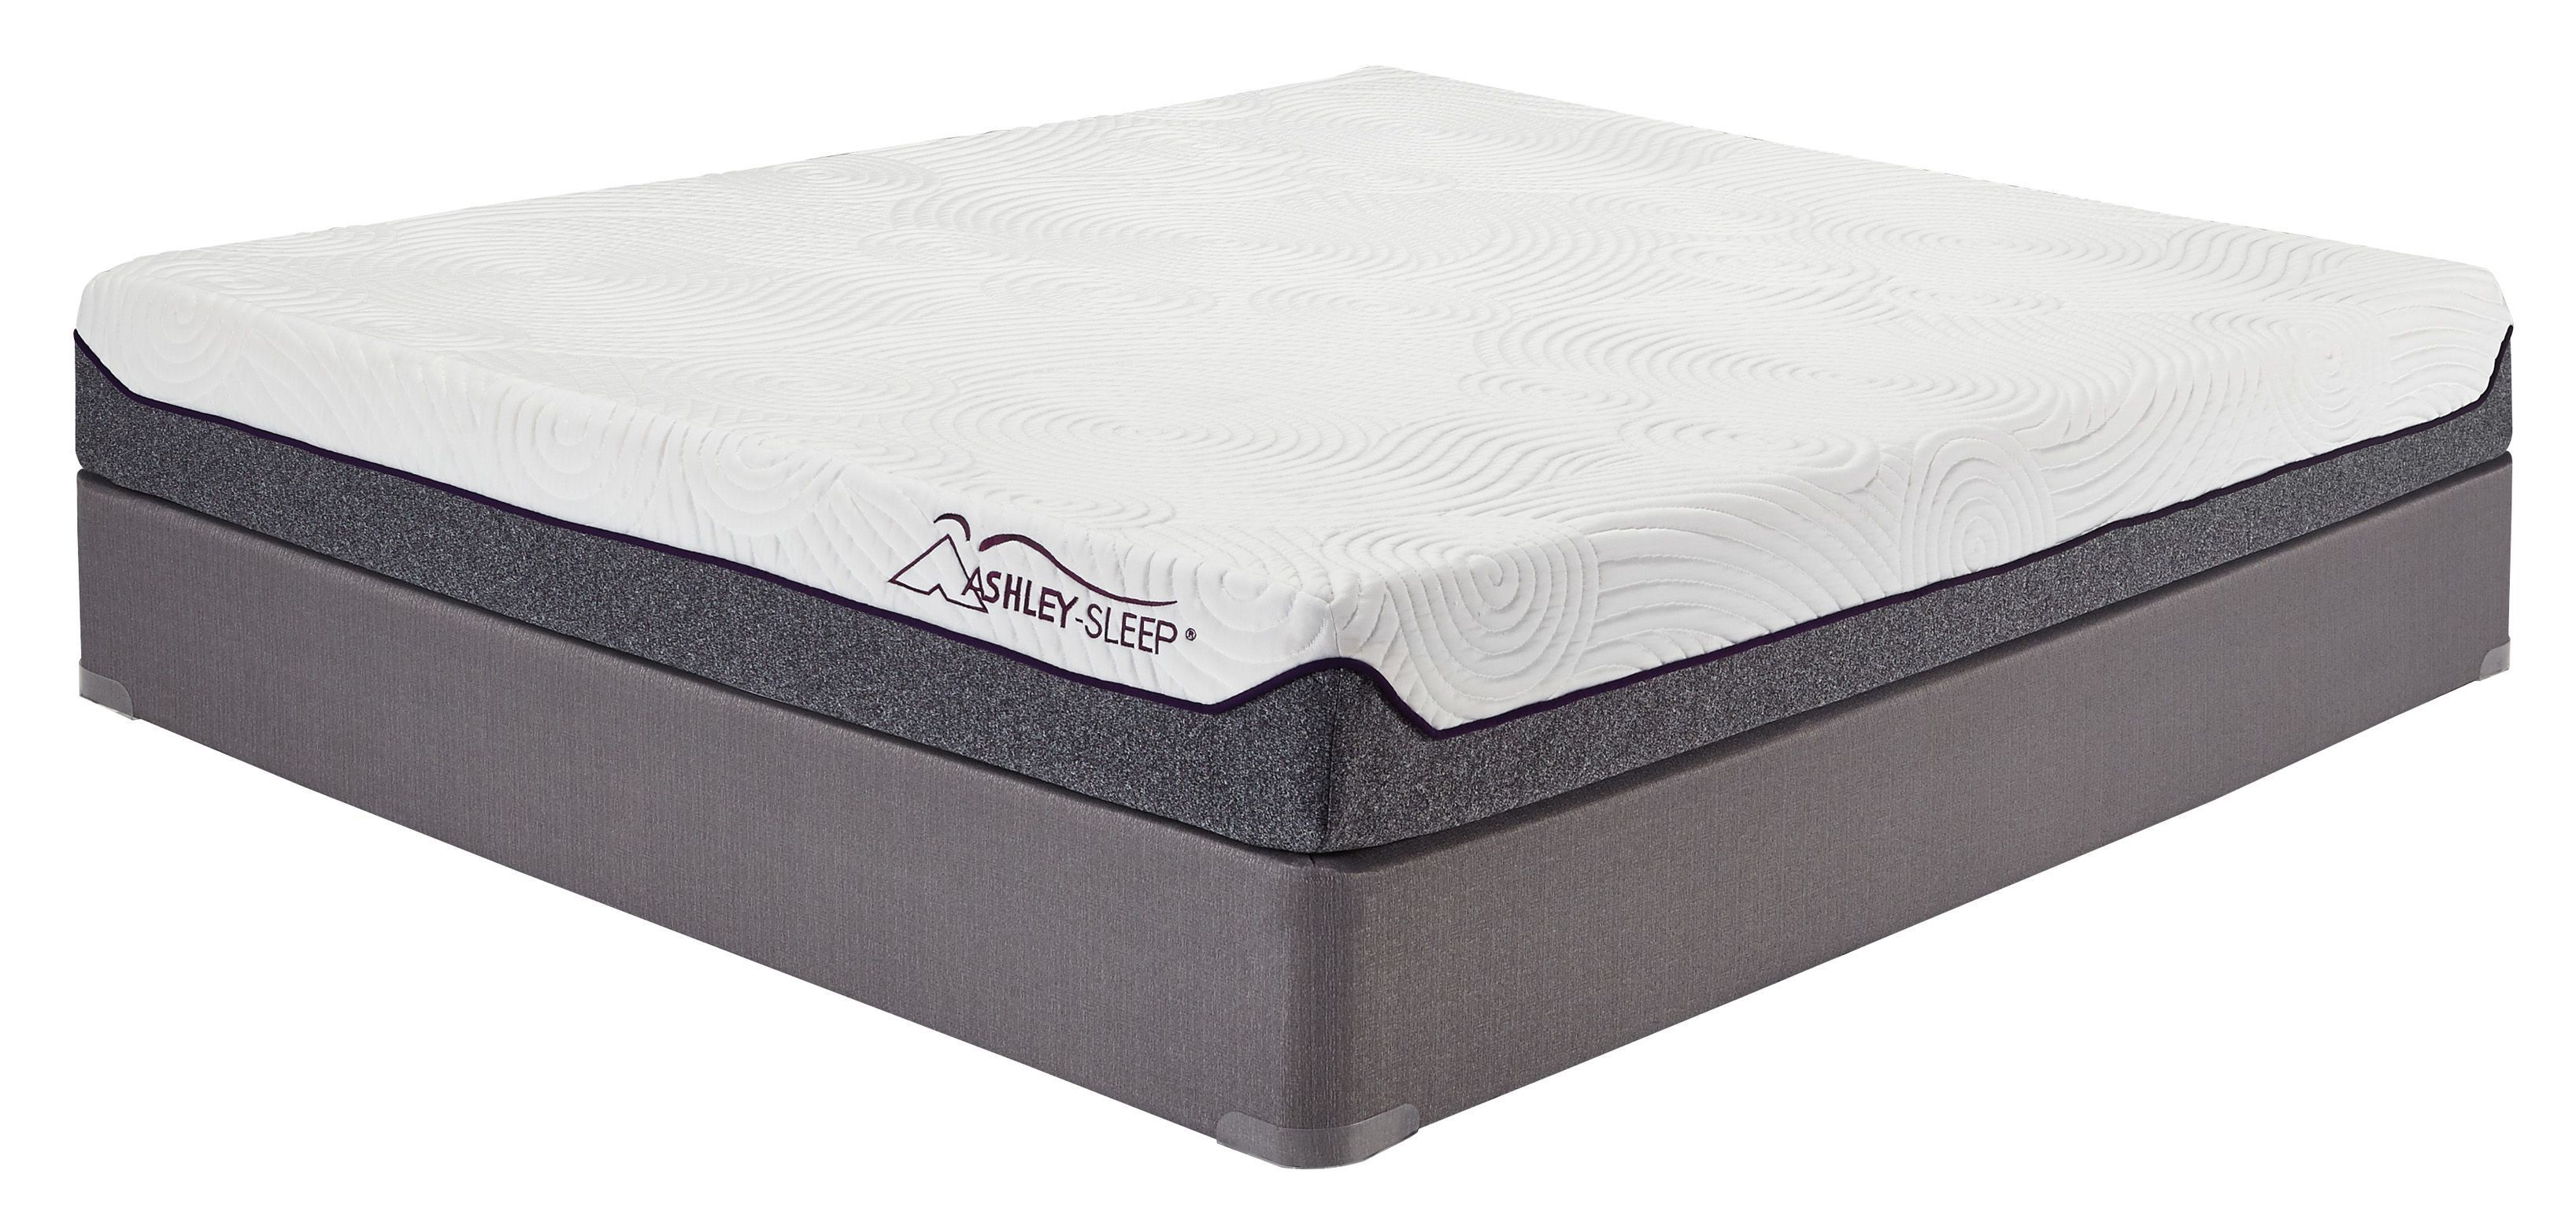 8 Inch Memory Foam White Twin Mattress M94411 Ashley